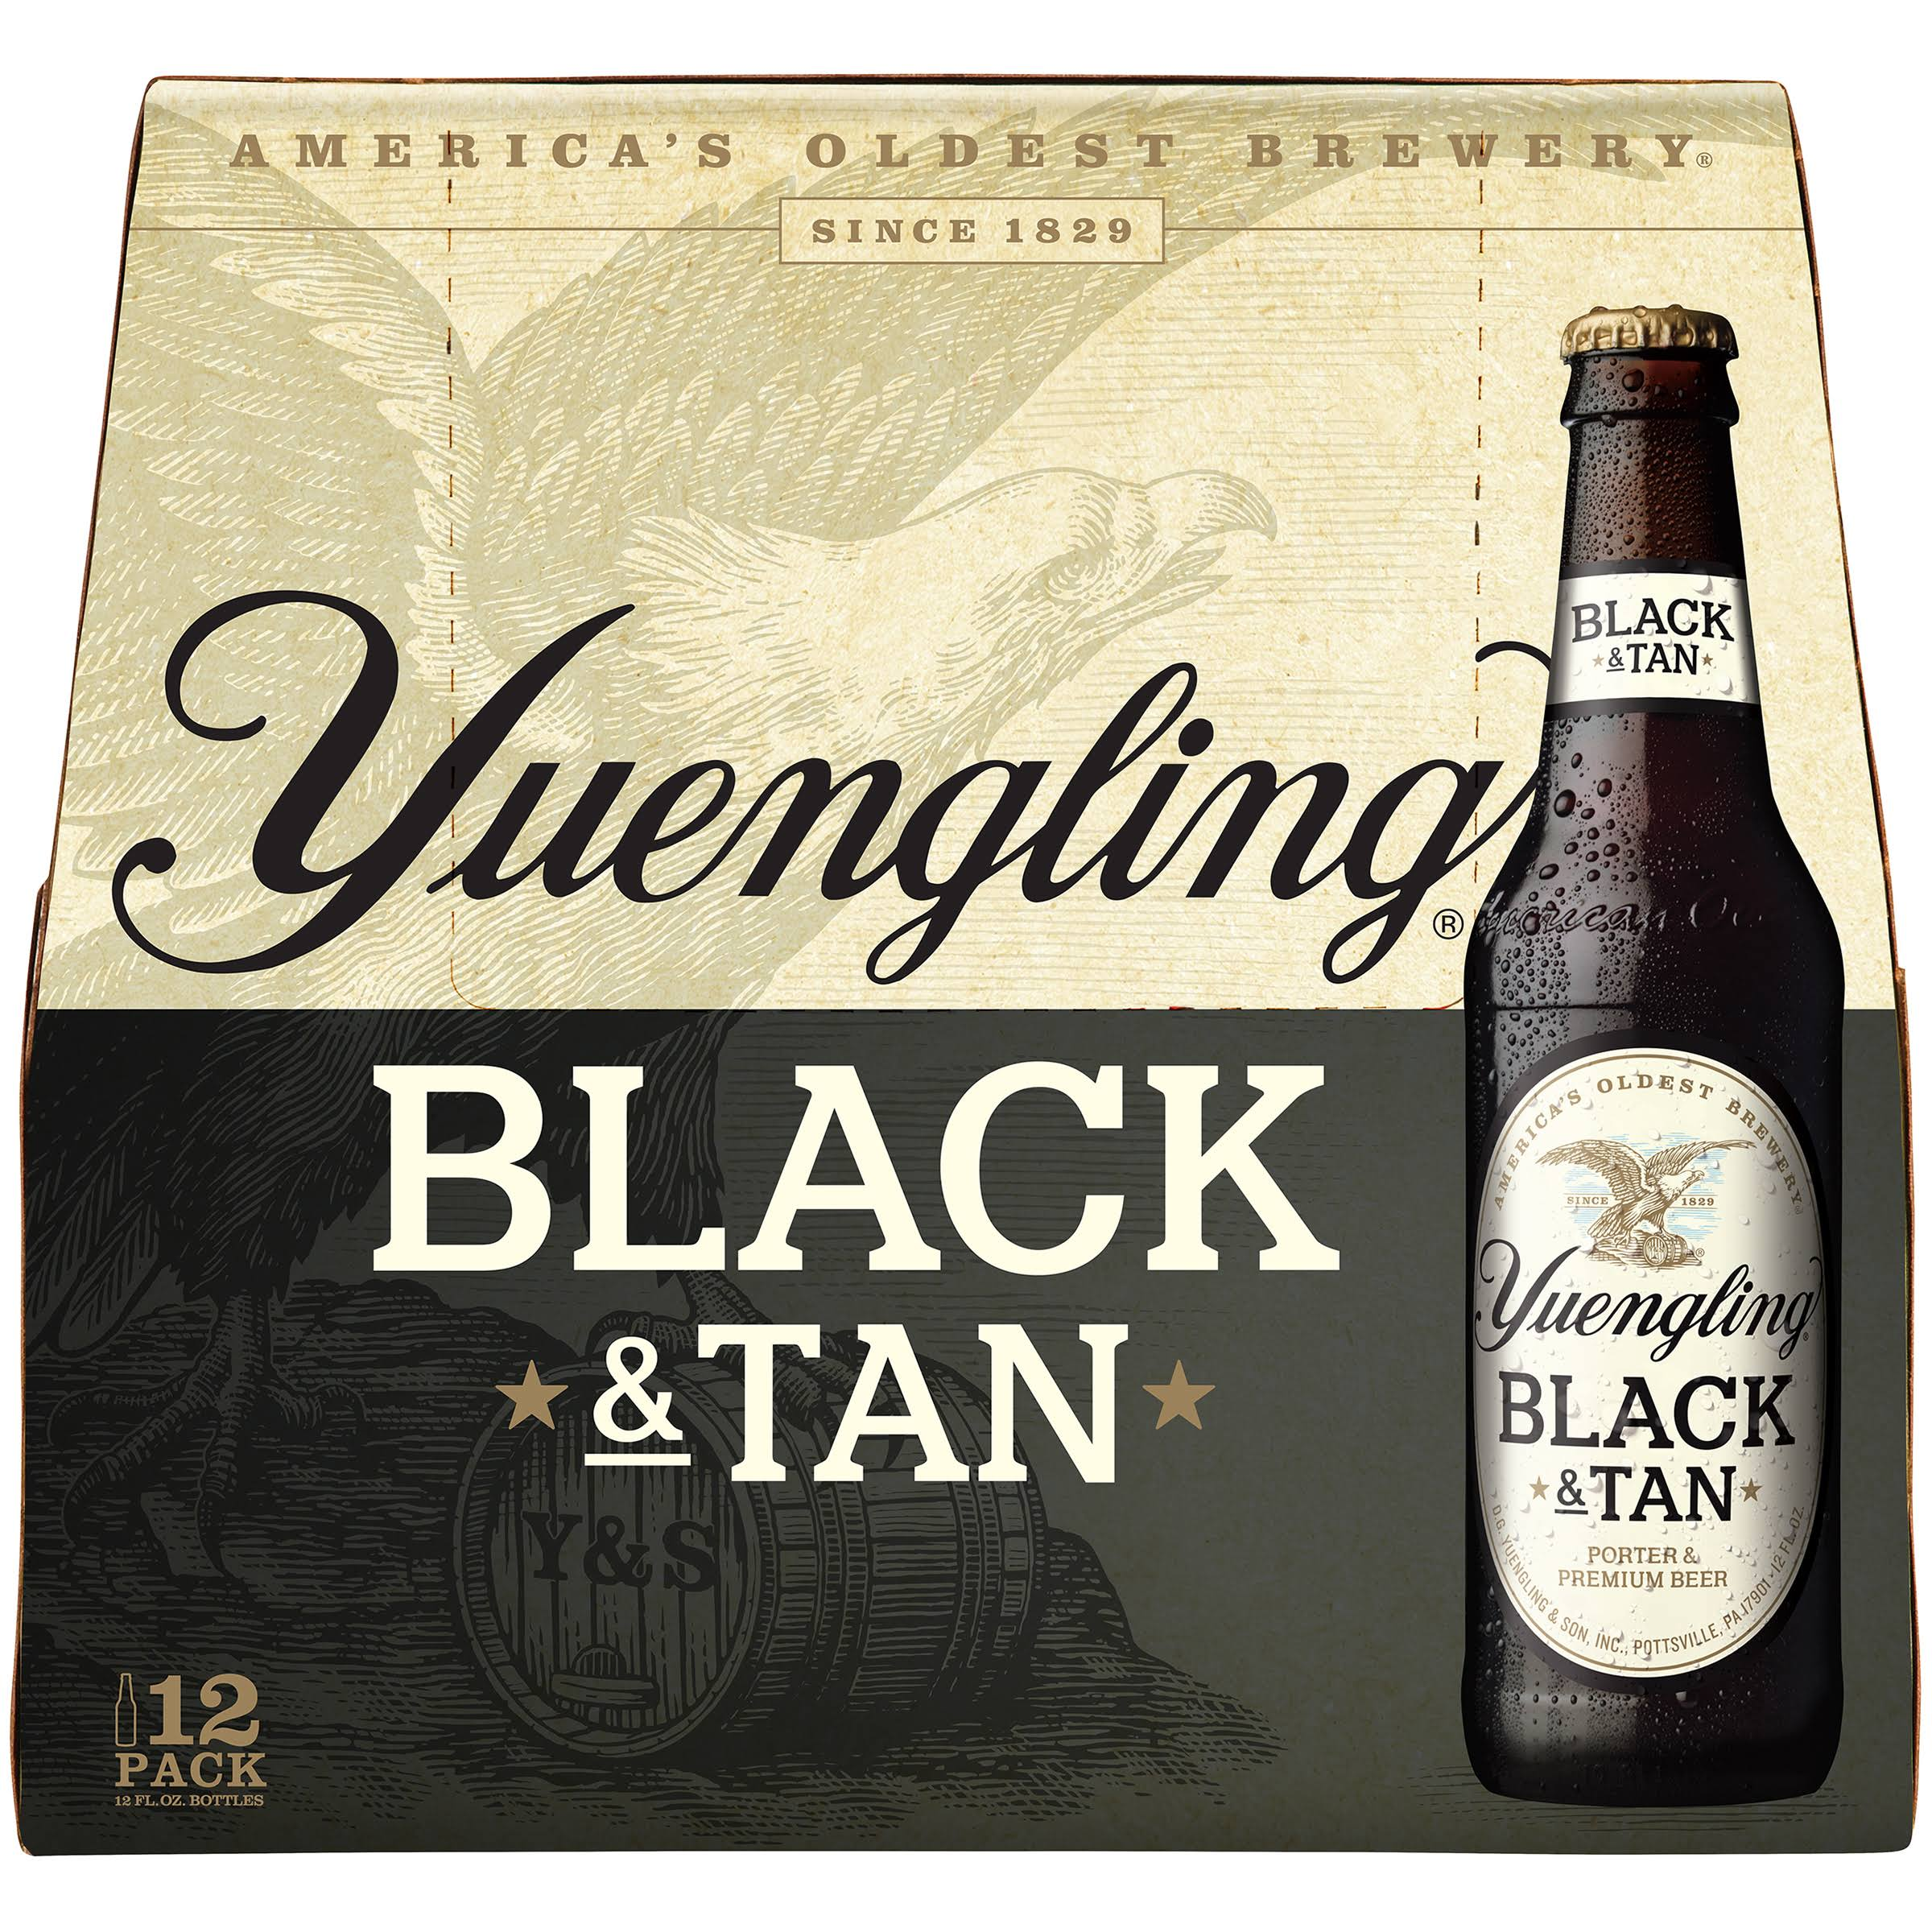 Yuengling Black & Tan, Original - 12 pack, 12 fl oz bottles